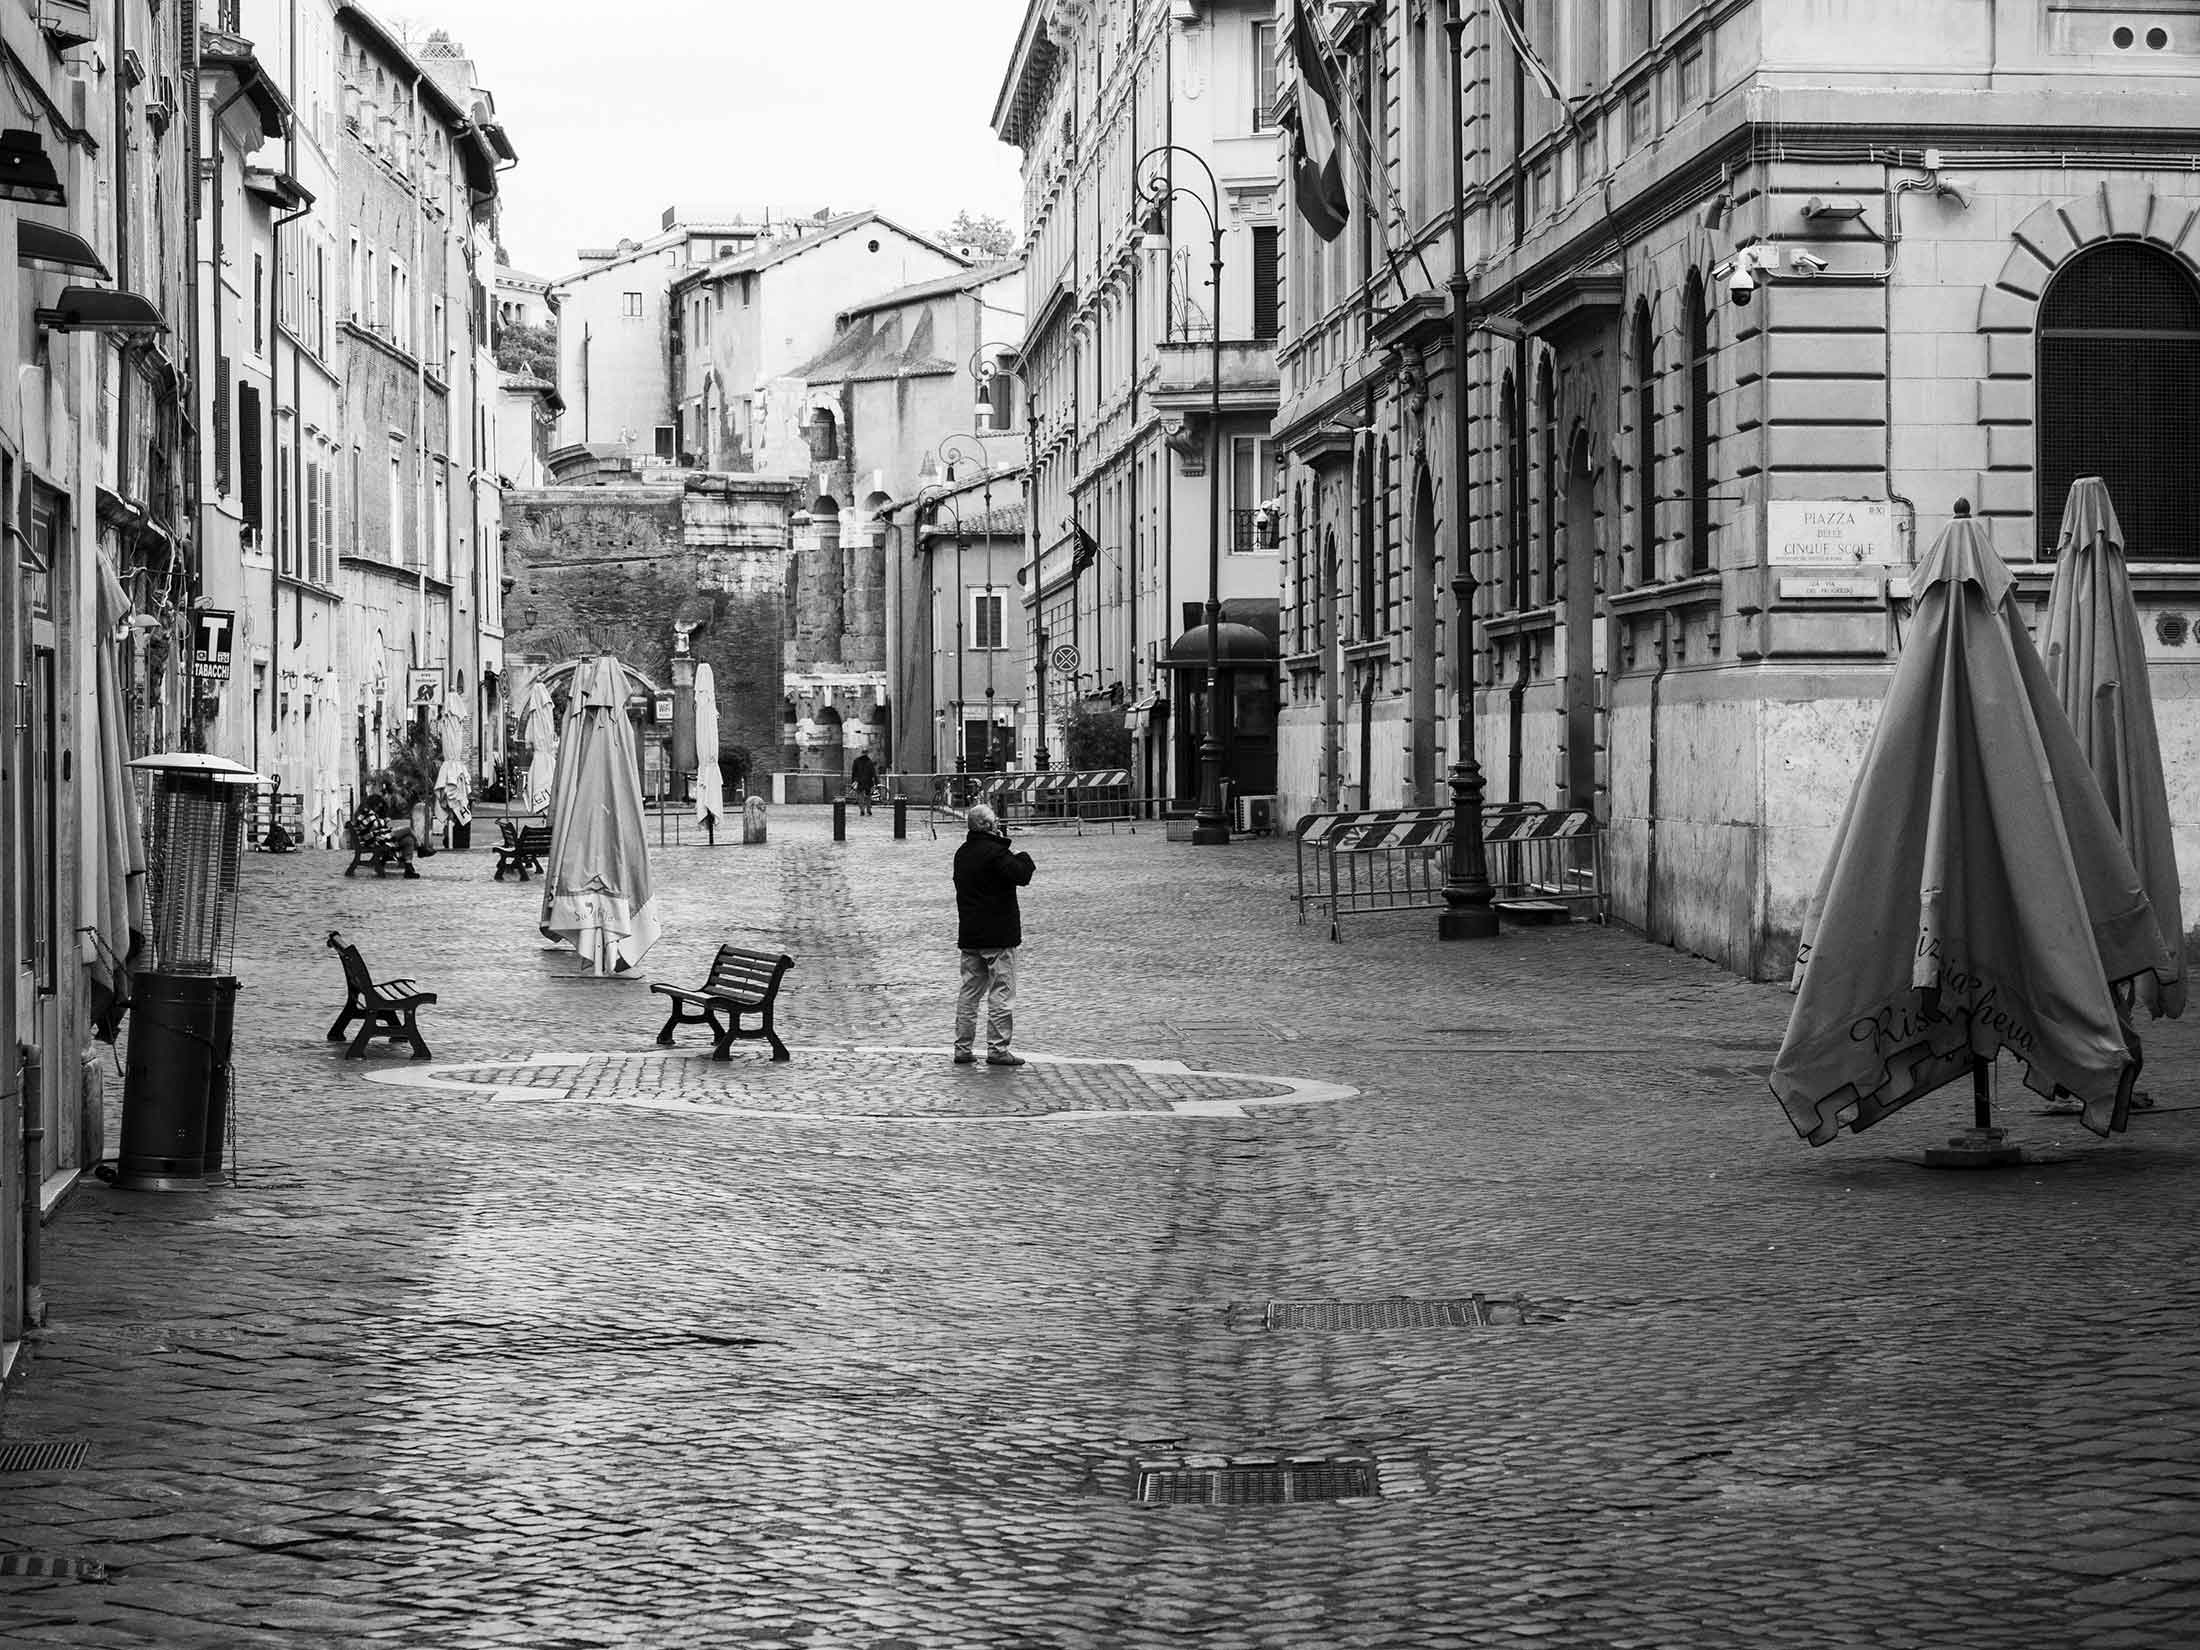 daily-life-in-italy-during-the-period-of-corona-virus-covid-19